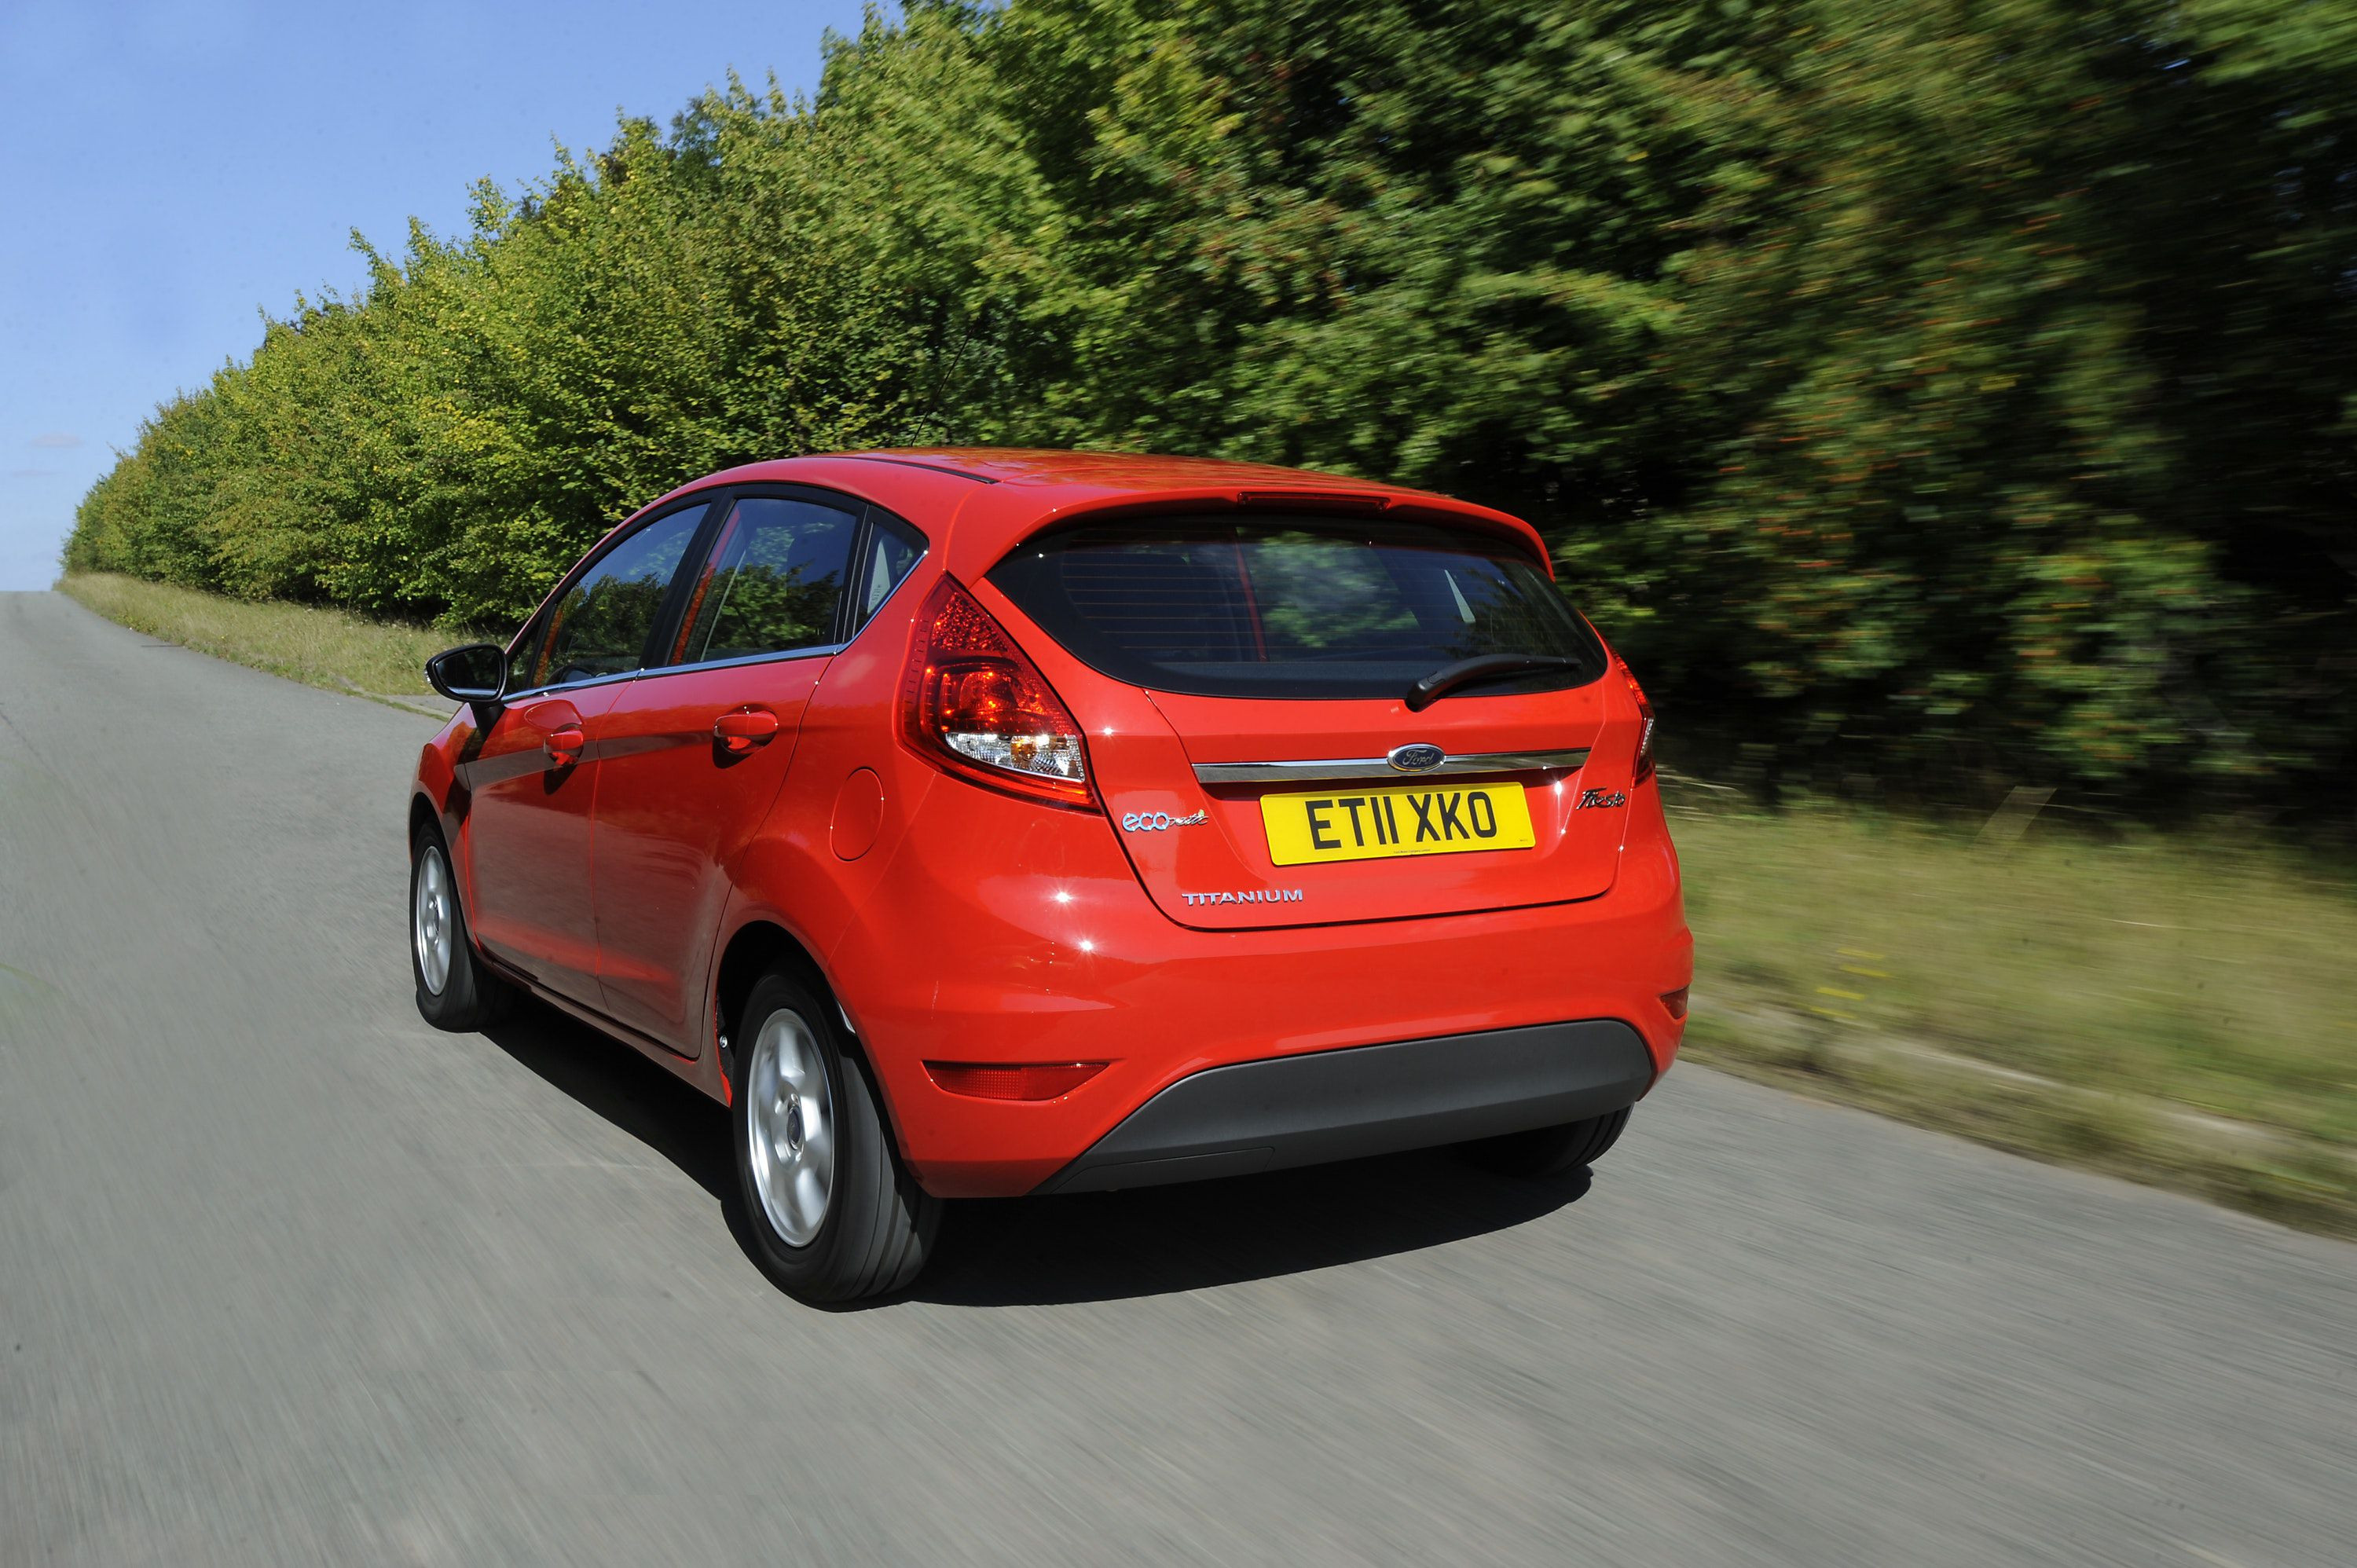 Rear view of a Ford Fiesta driving on a road